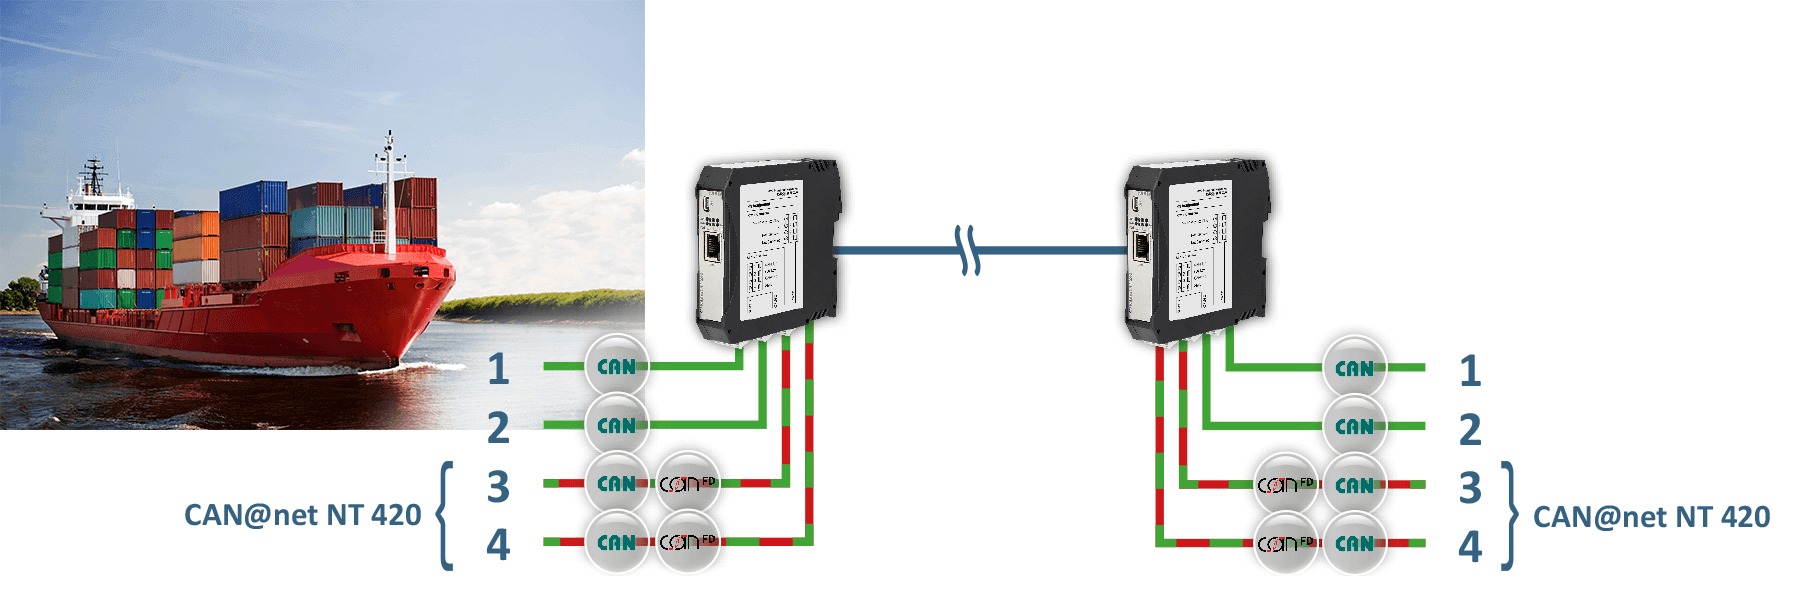 Get rid of EMI issues with CAN-Ethernet-CAN bridges